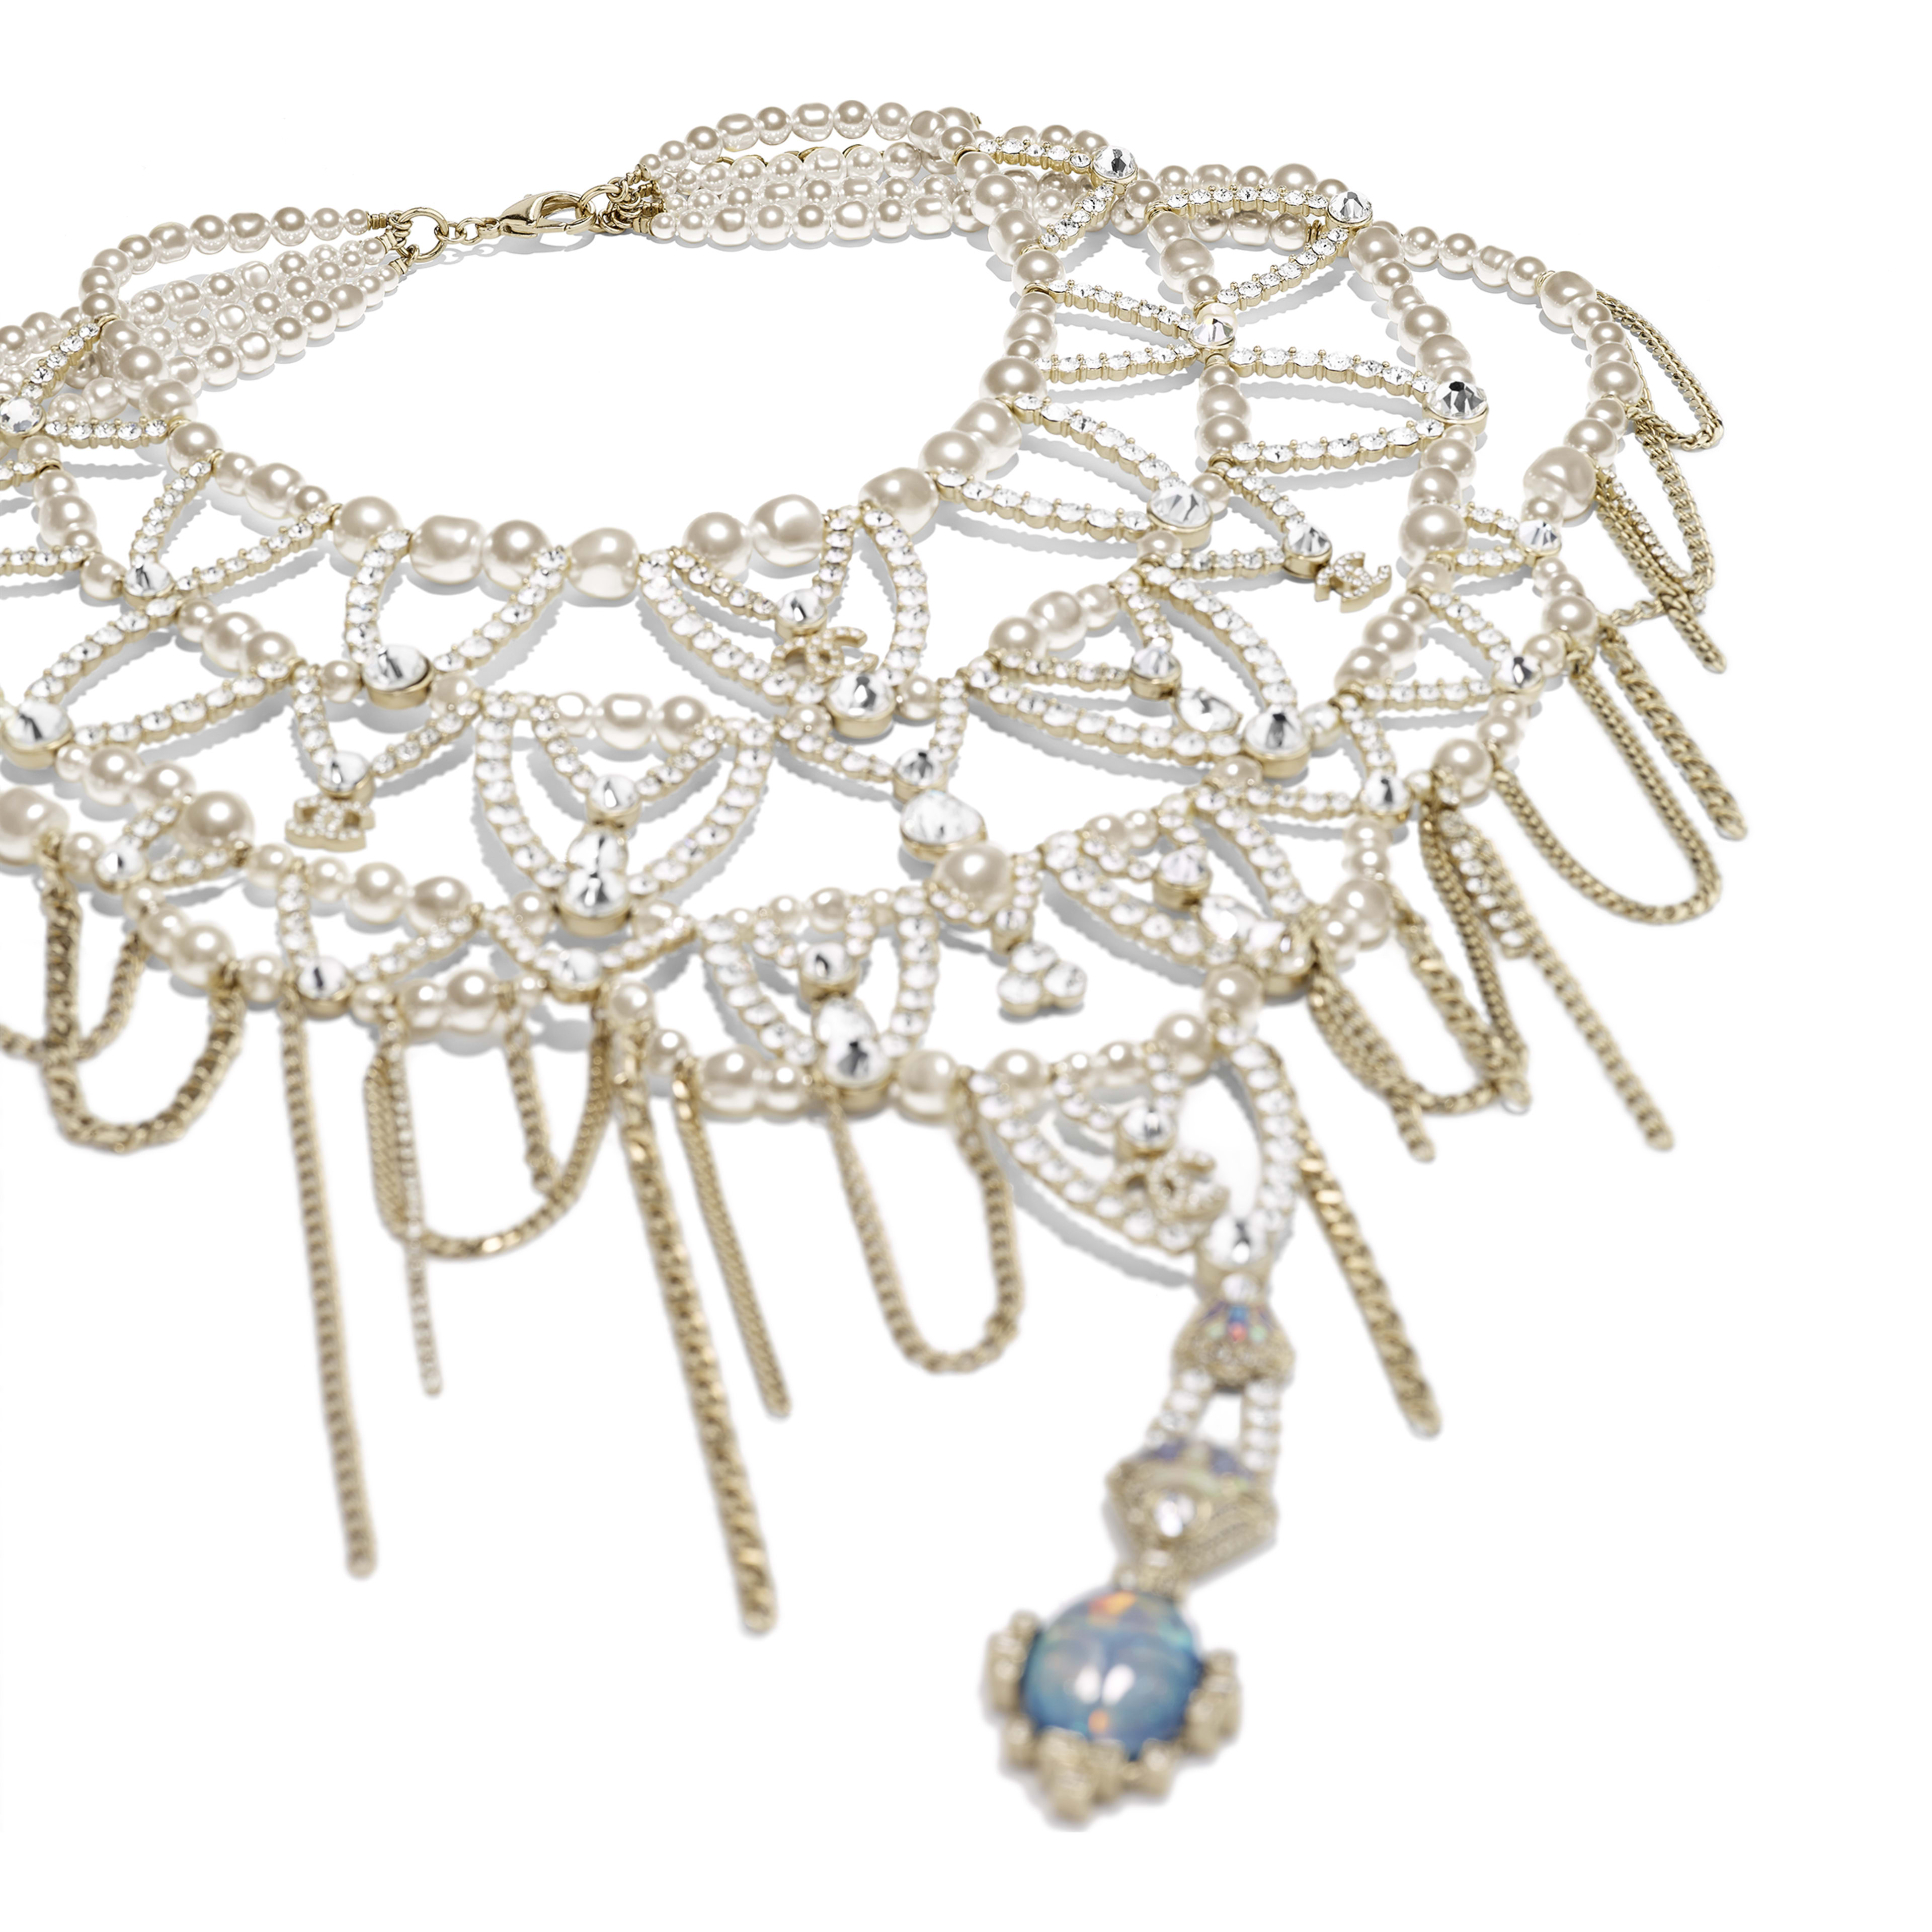 Necklace - Gold, Pearly White & Crystal - Metal, Glass Pearls, Strass & Resin - Alternative view - see full sized version